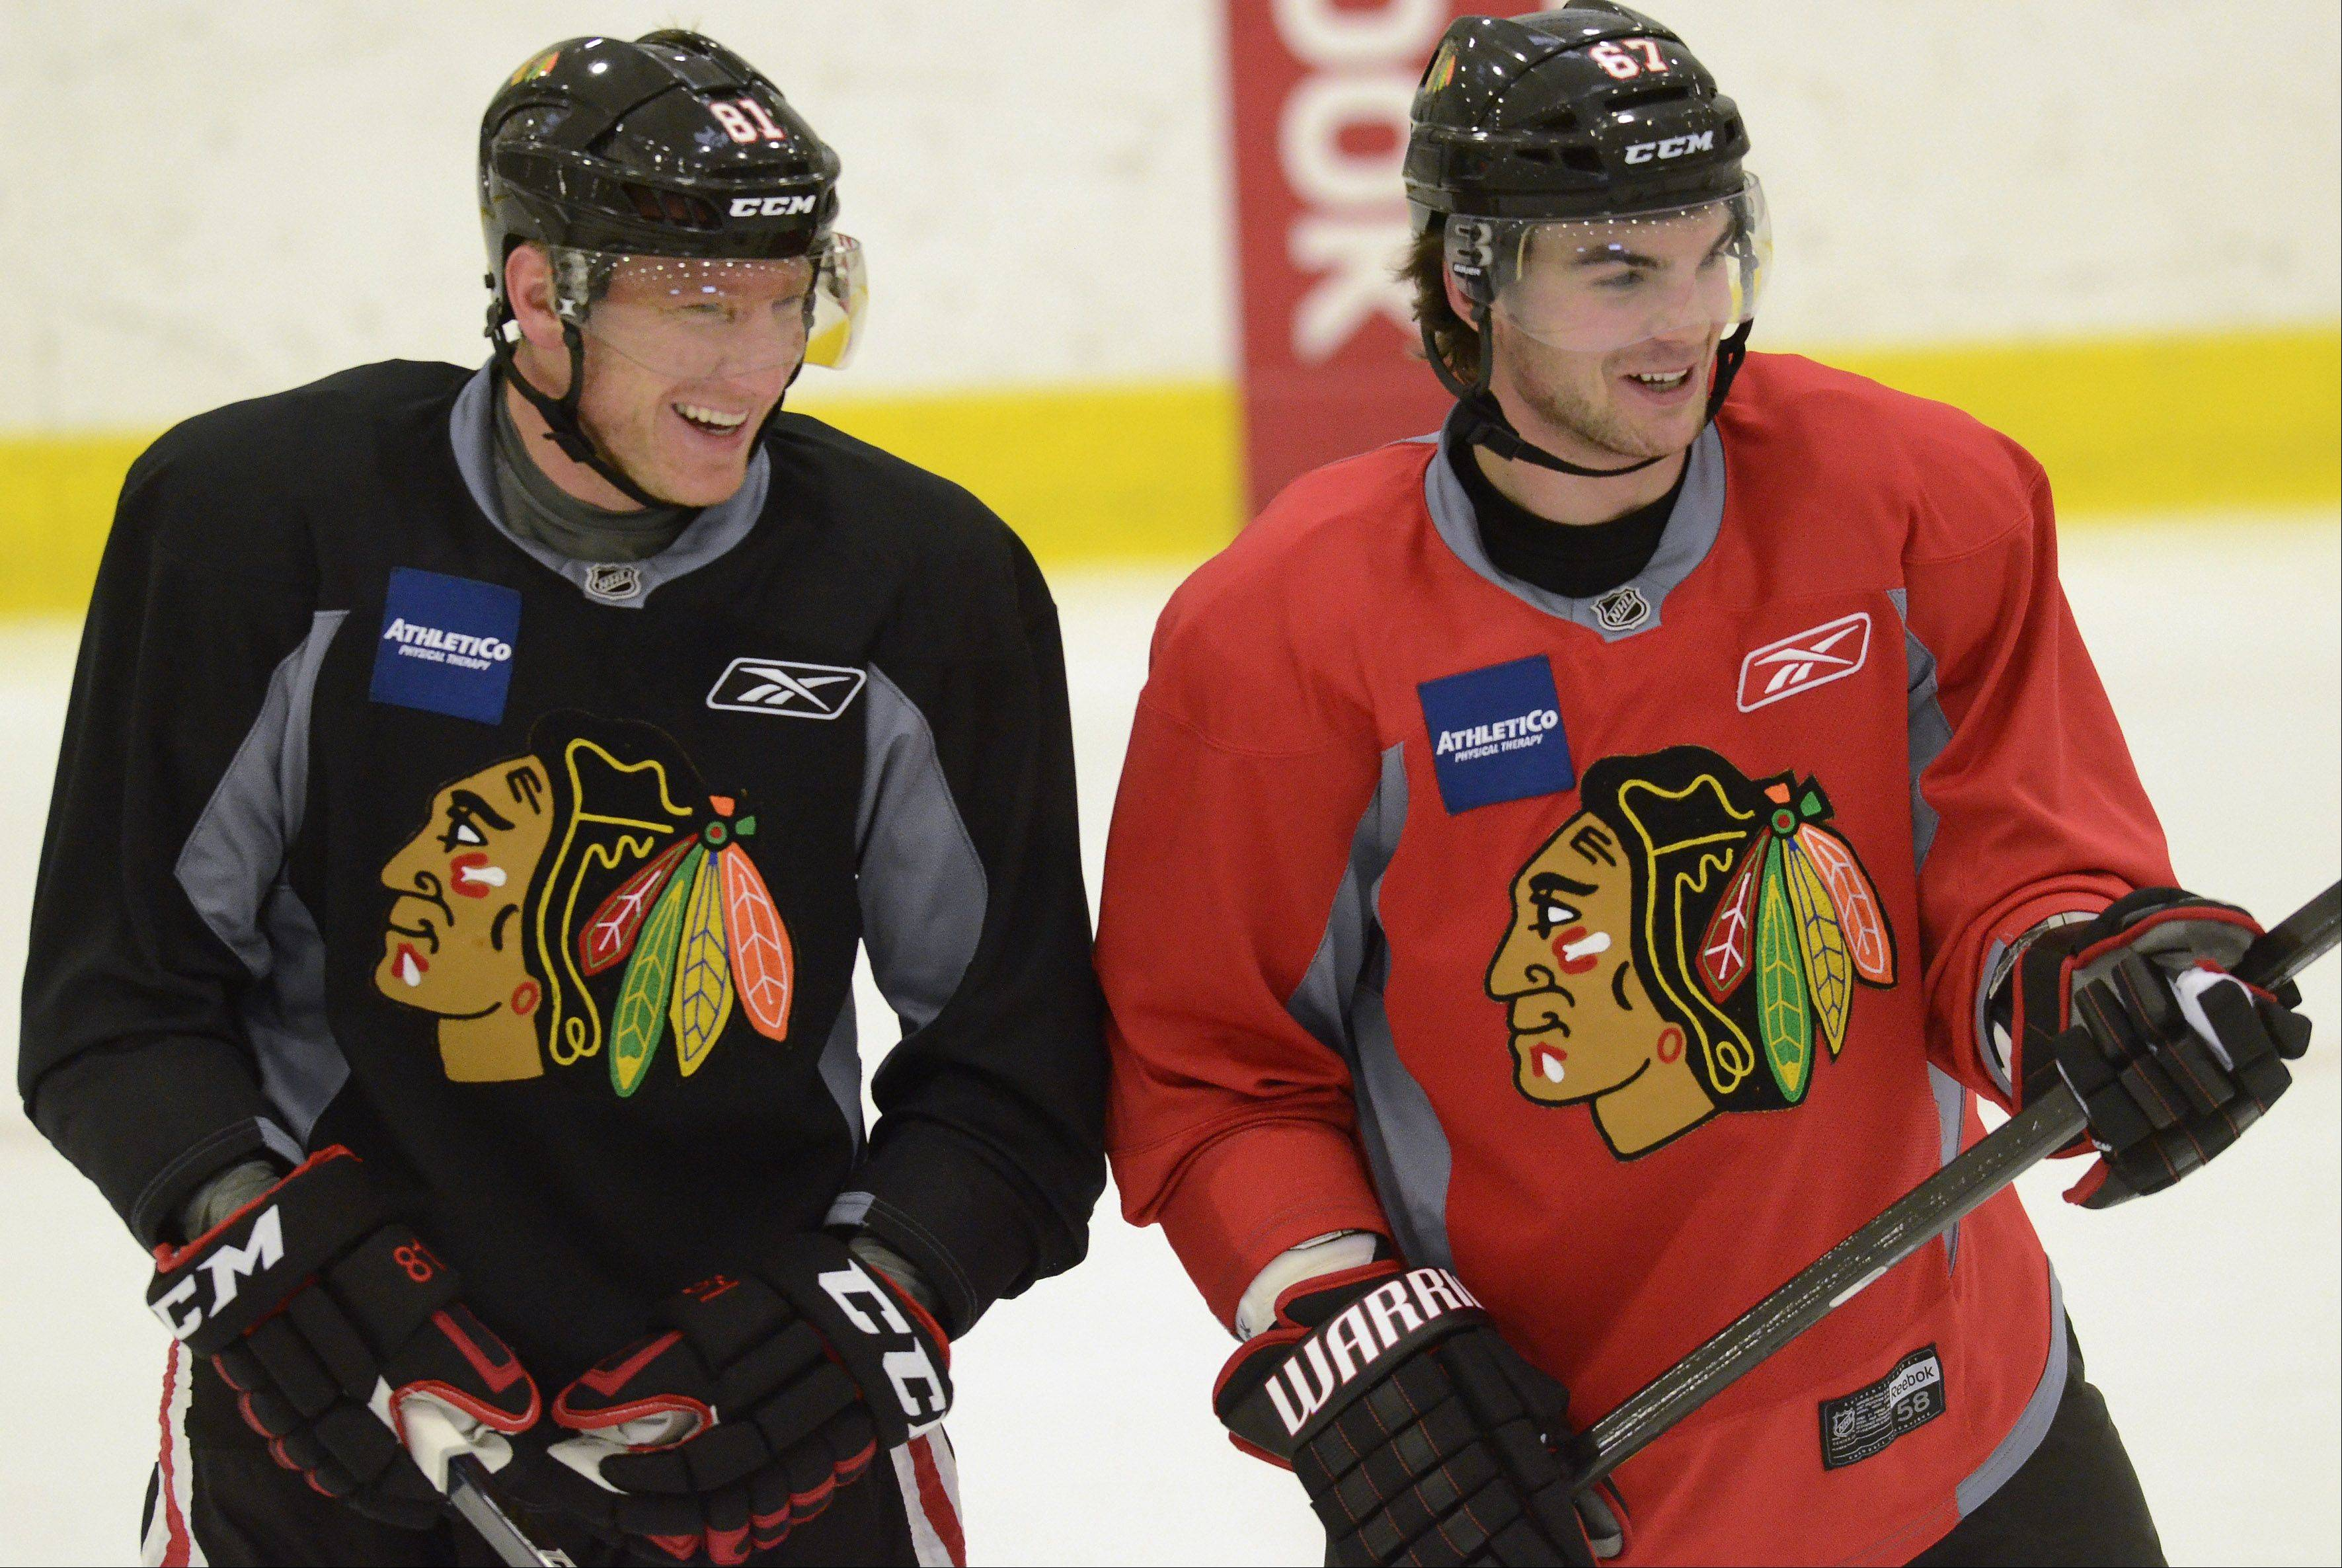 Fellow countrymen Marian Hossa and Michael Frolik share a laugh during Blackhawks informal practice at Johnny's Ice House Thursday.